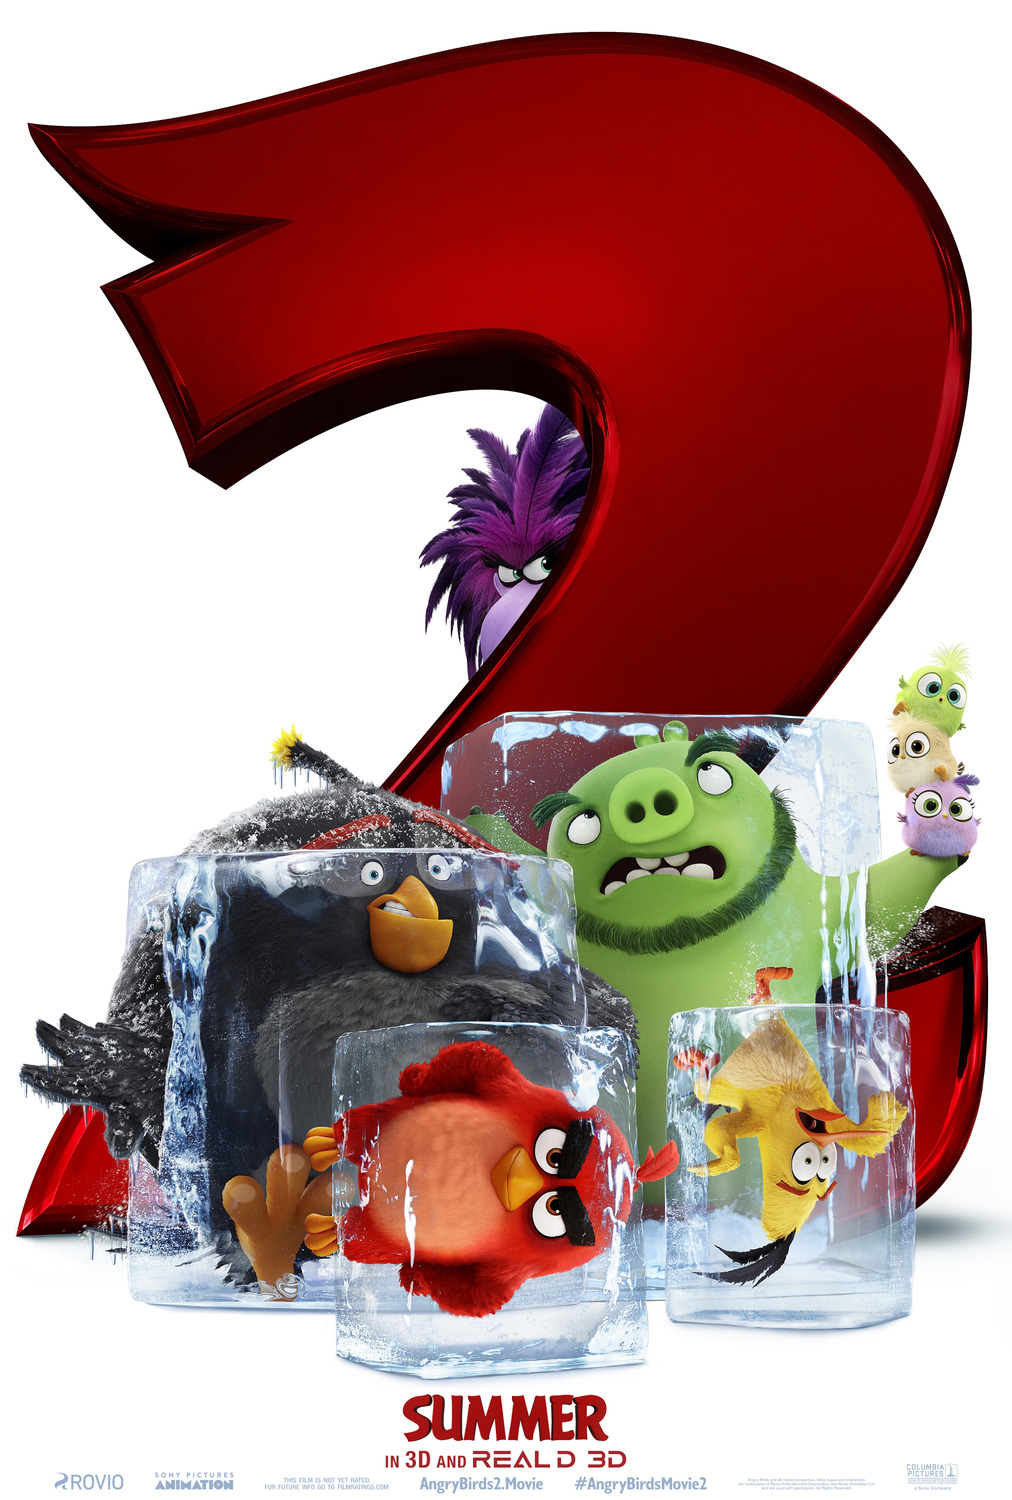 winter is coming in new angry birds movie 2 trailer